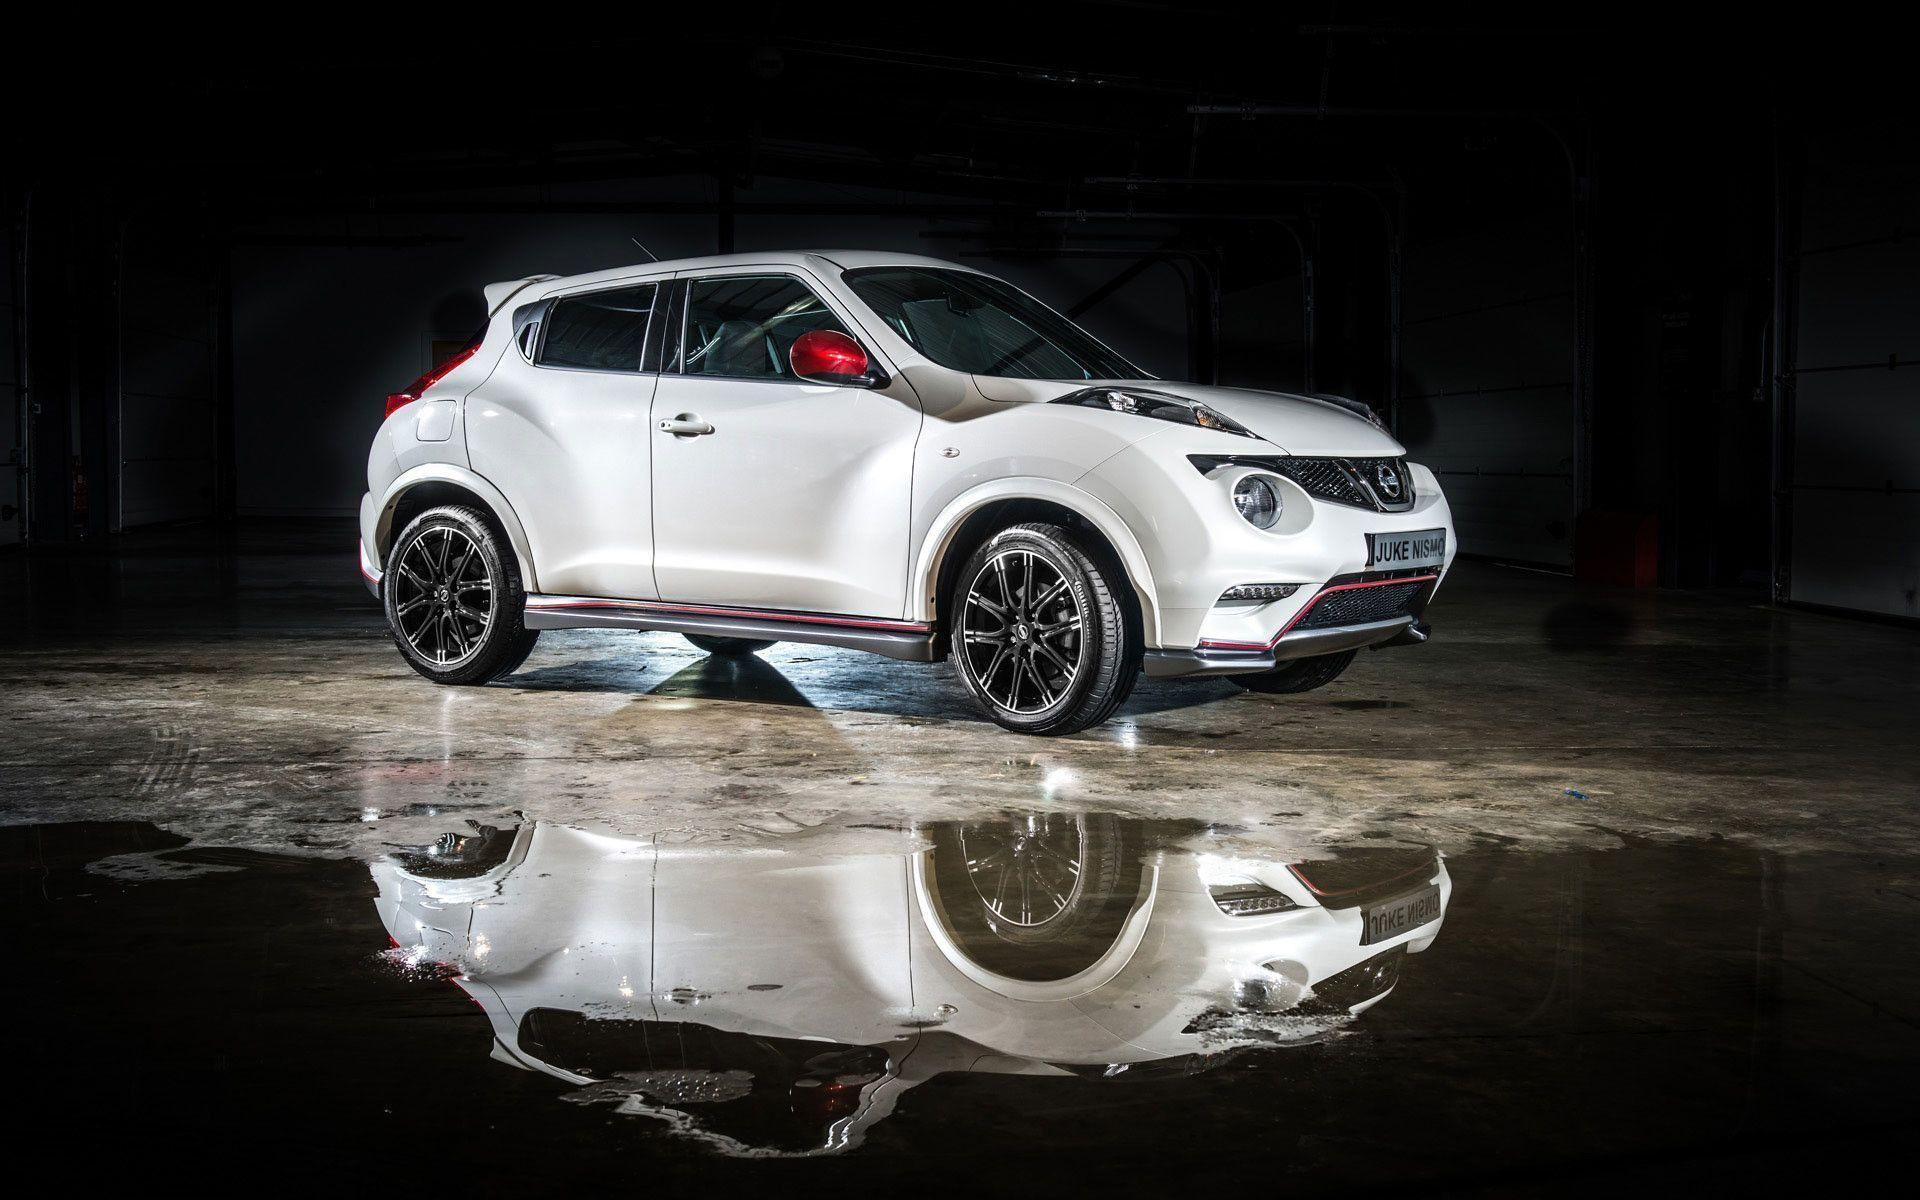 Nissan Juke Nismo Wallpapers 1920x1200PX ~ Wallpapers Nismo